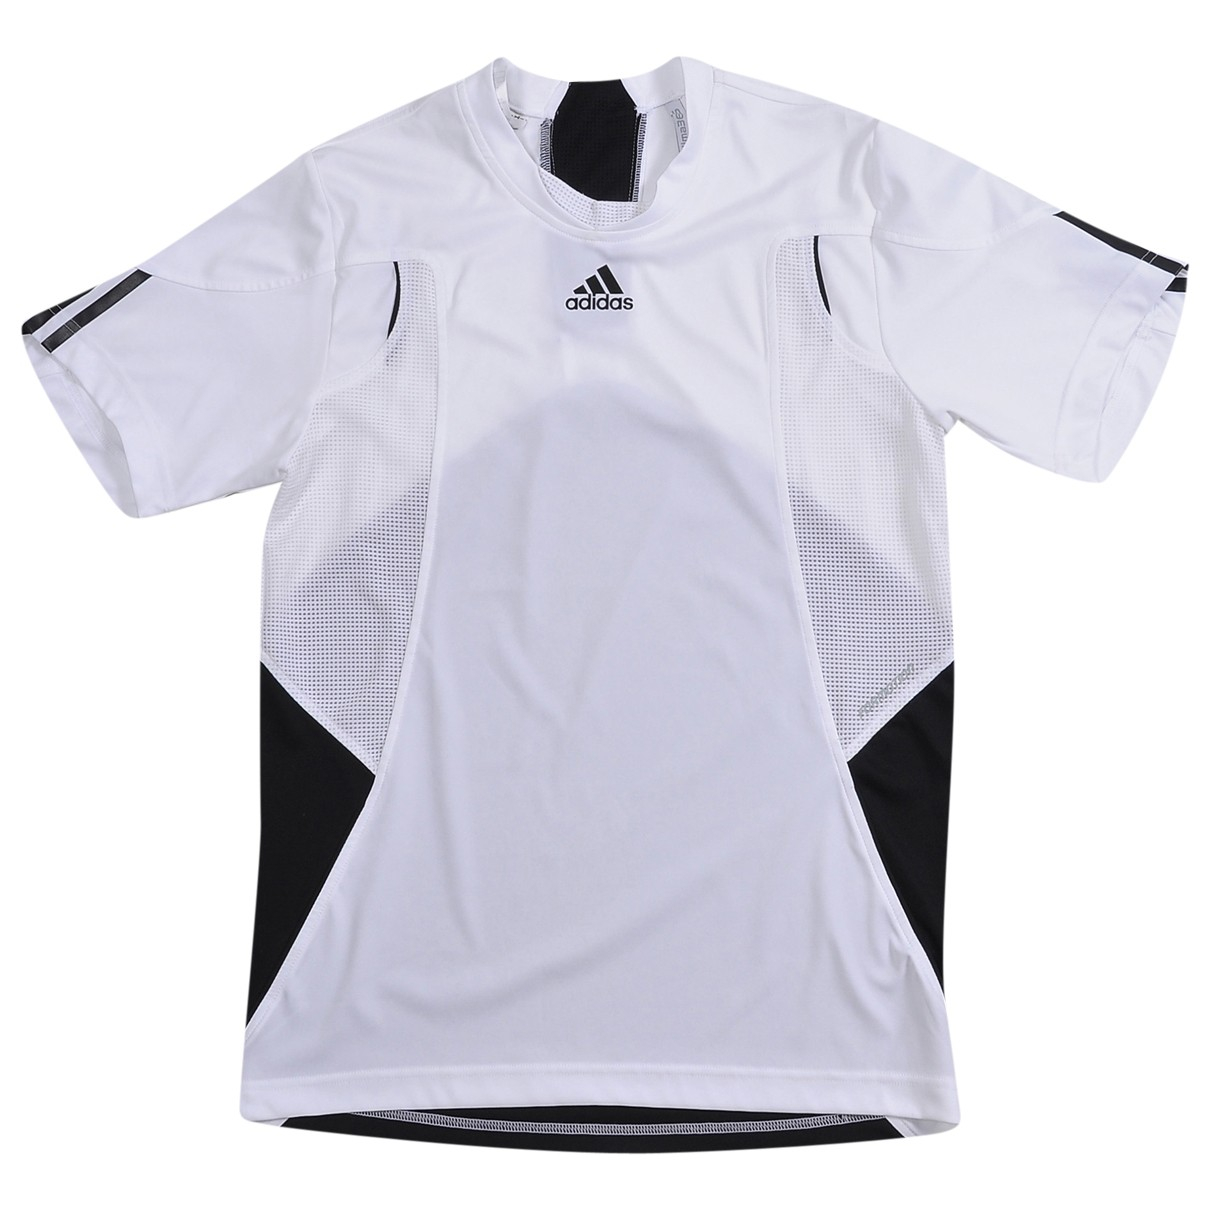 Adidas \N T-Shirts in  Weiss Polyester